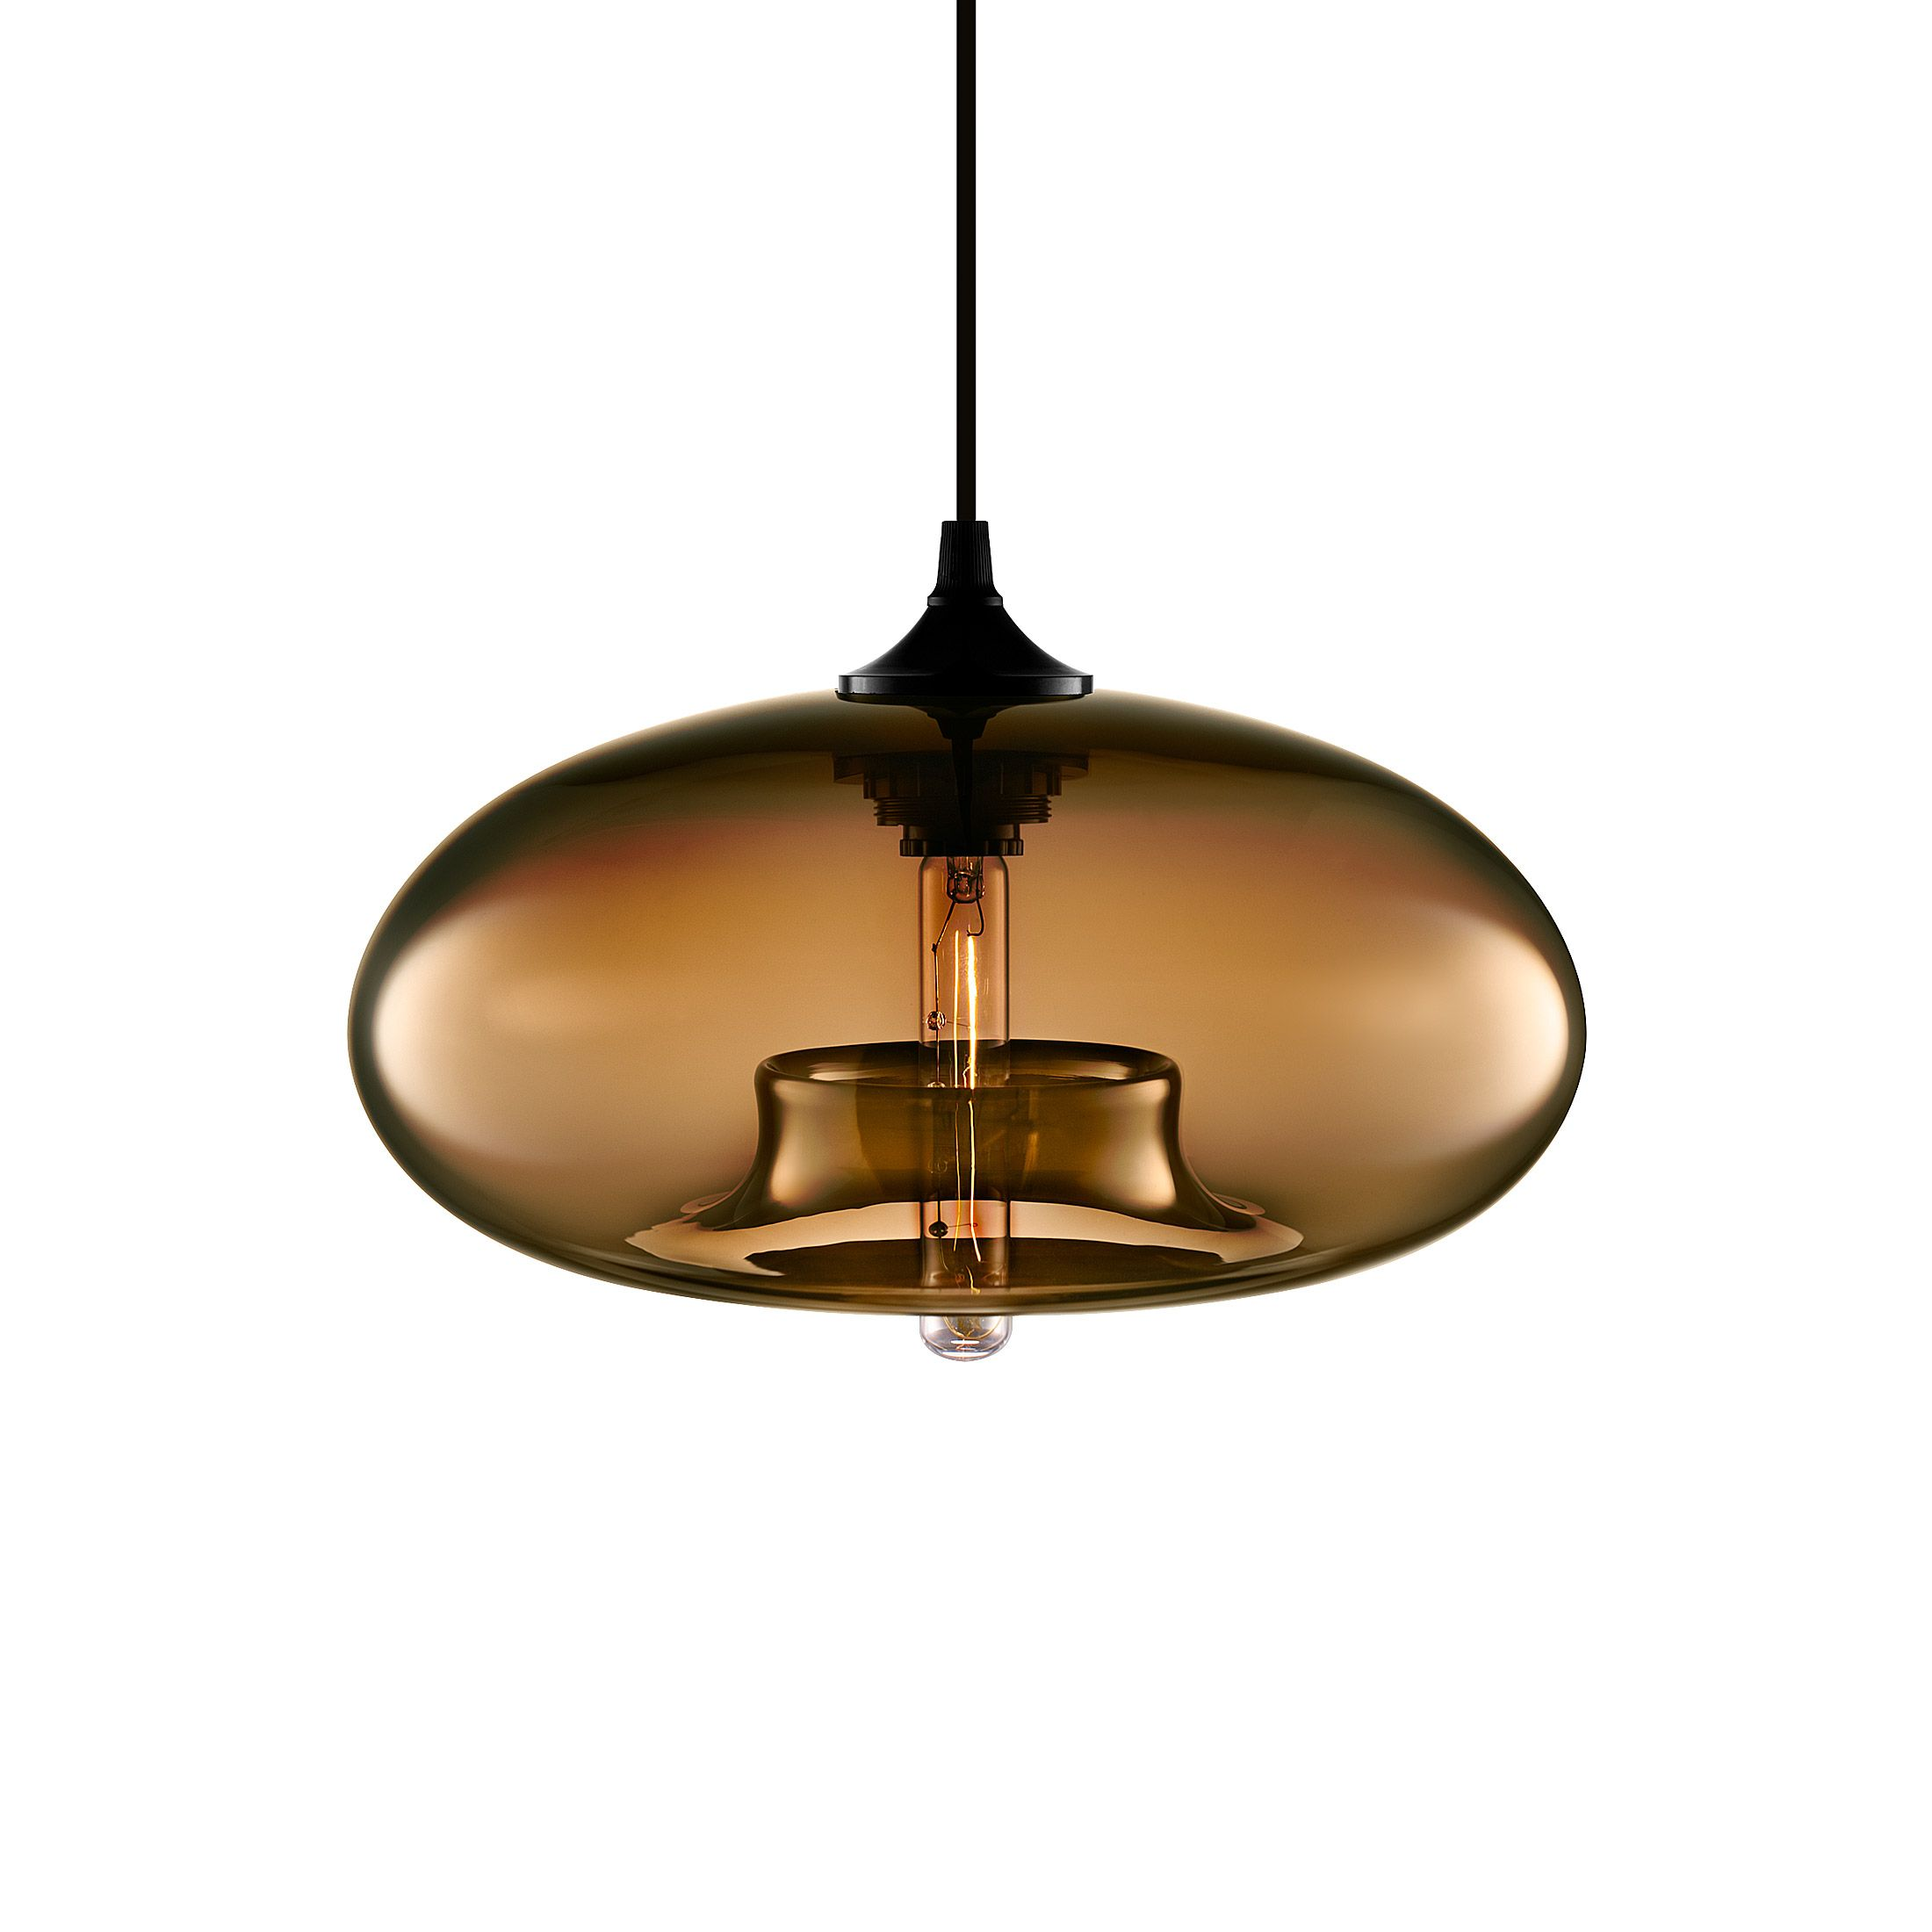 Ceiling Lights In Next : Pendant ceiling lights contemporary roselawnlutheran